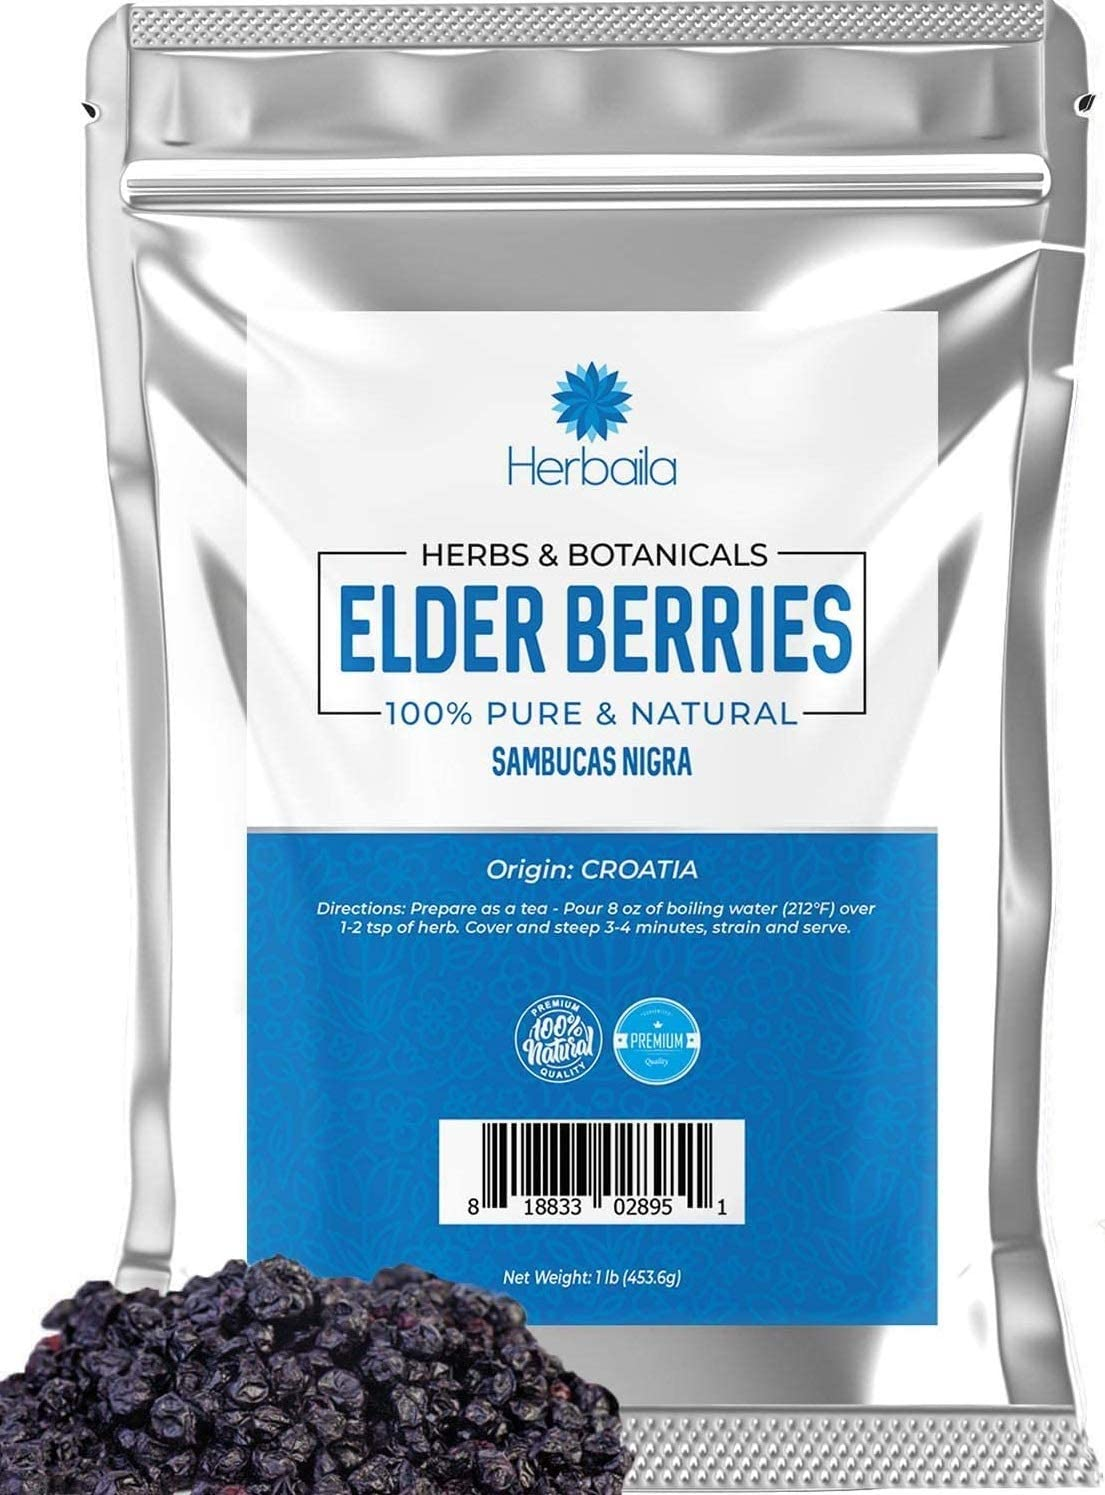 Elderberries Elderberry Extract